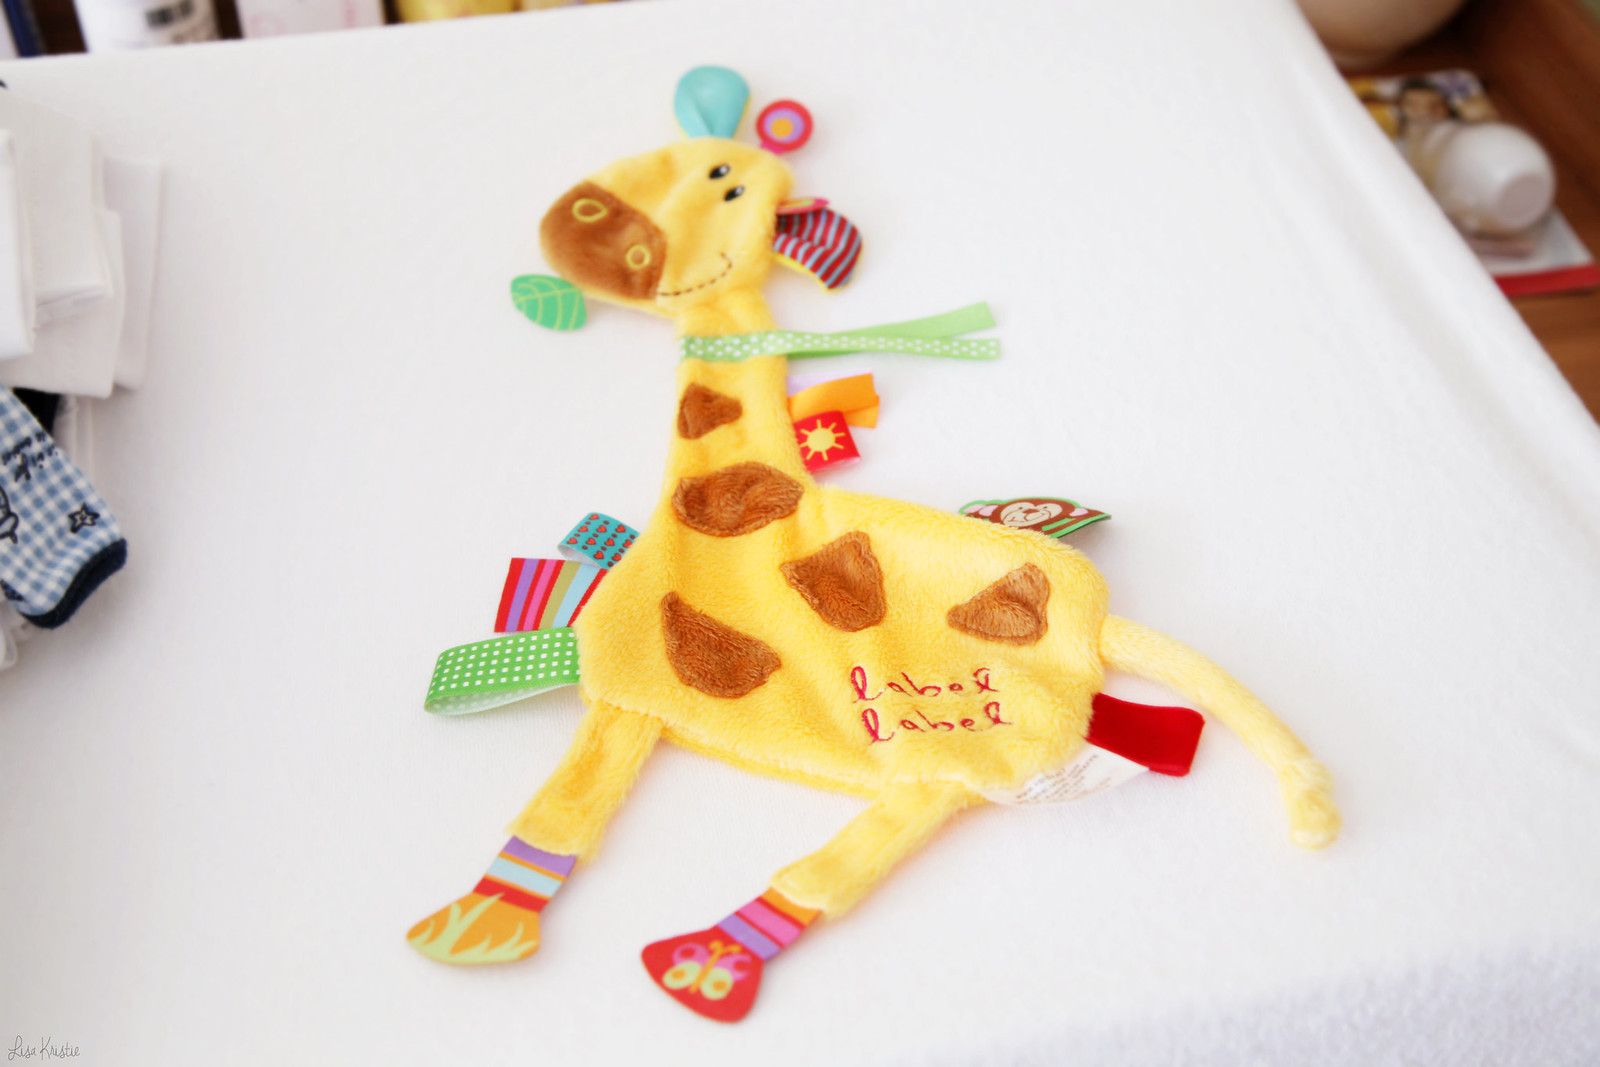 giraffe label label stuffed soft plush toy infant baby colorful bright yellow gender neutral